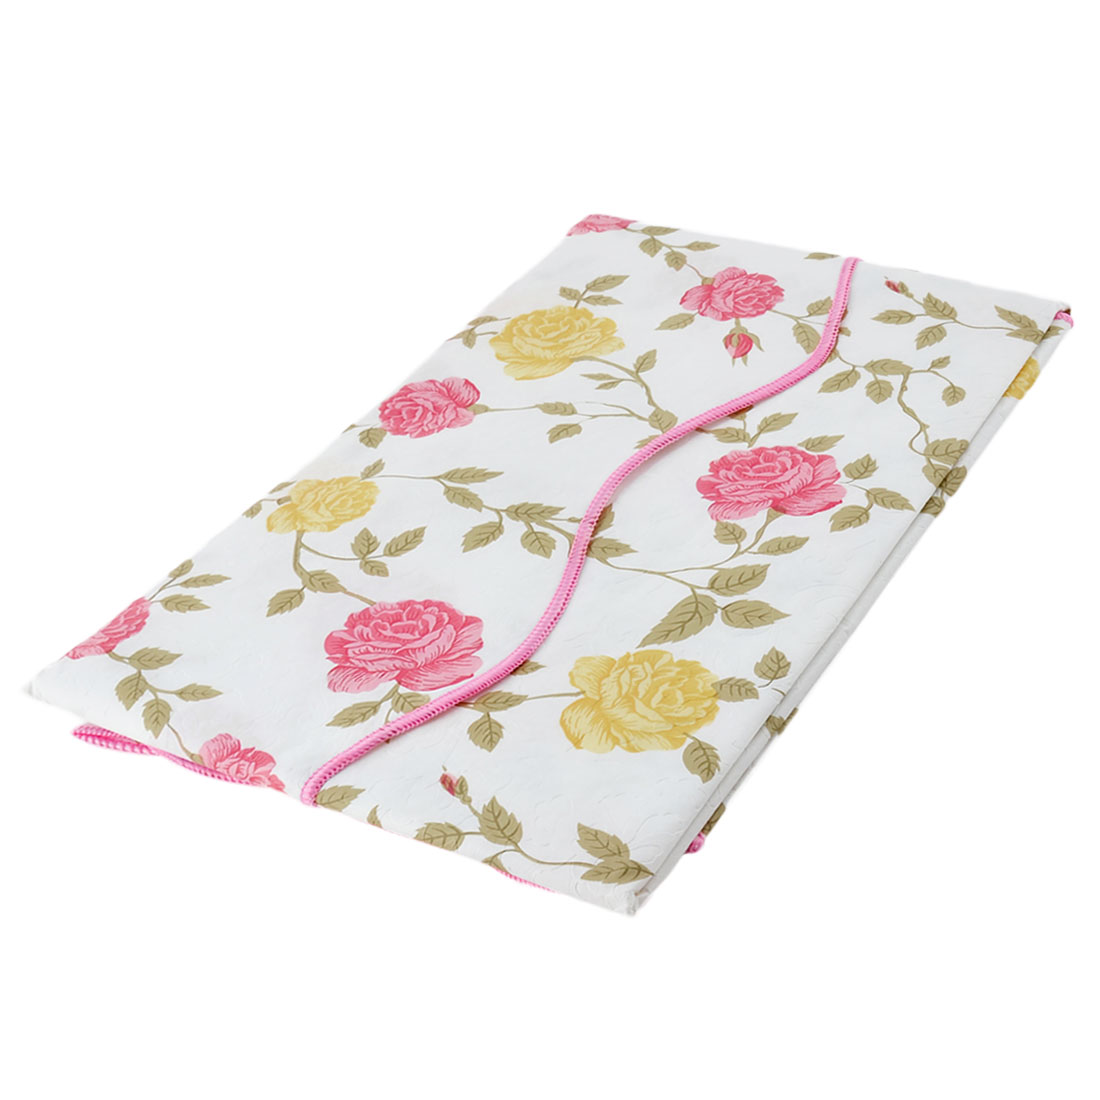 Home Picnic Square Bi-color Rose Pattern Water Resistant Oil-proof Tablecloth Table Cloth Cover 35 x 35 Inch